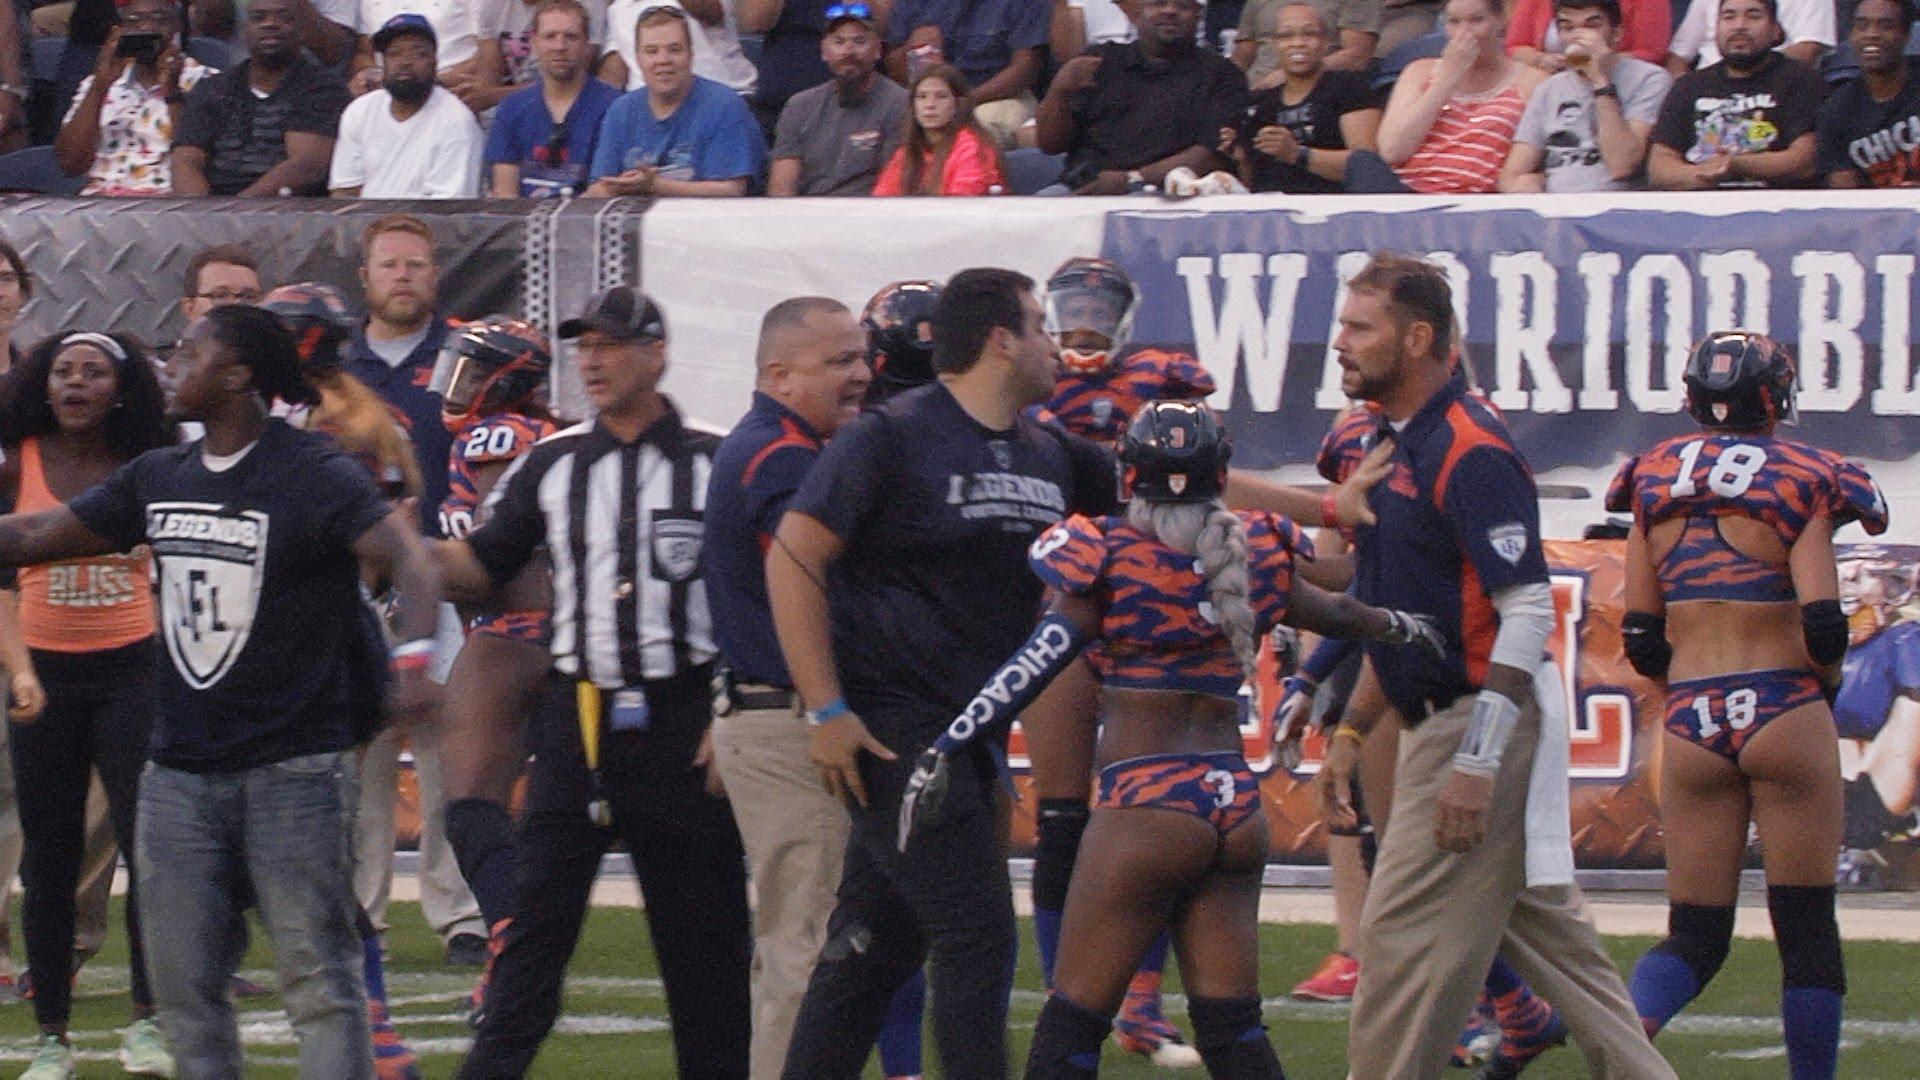 LFL Coach gets punched in the face during scrum